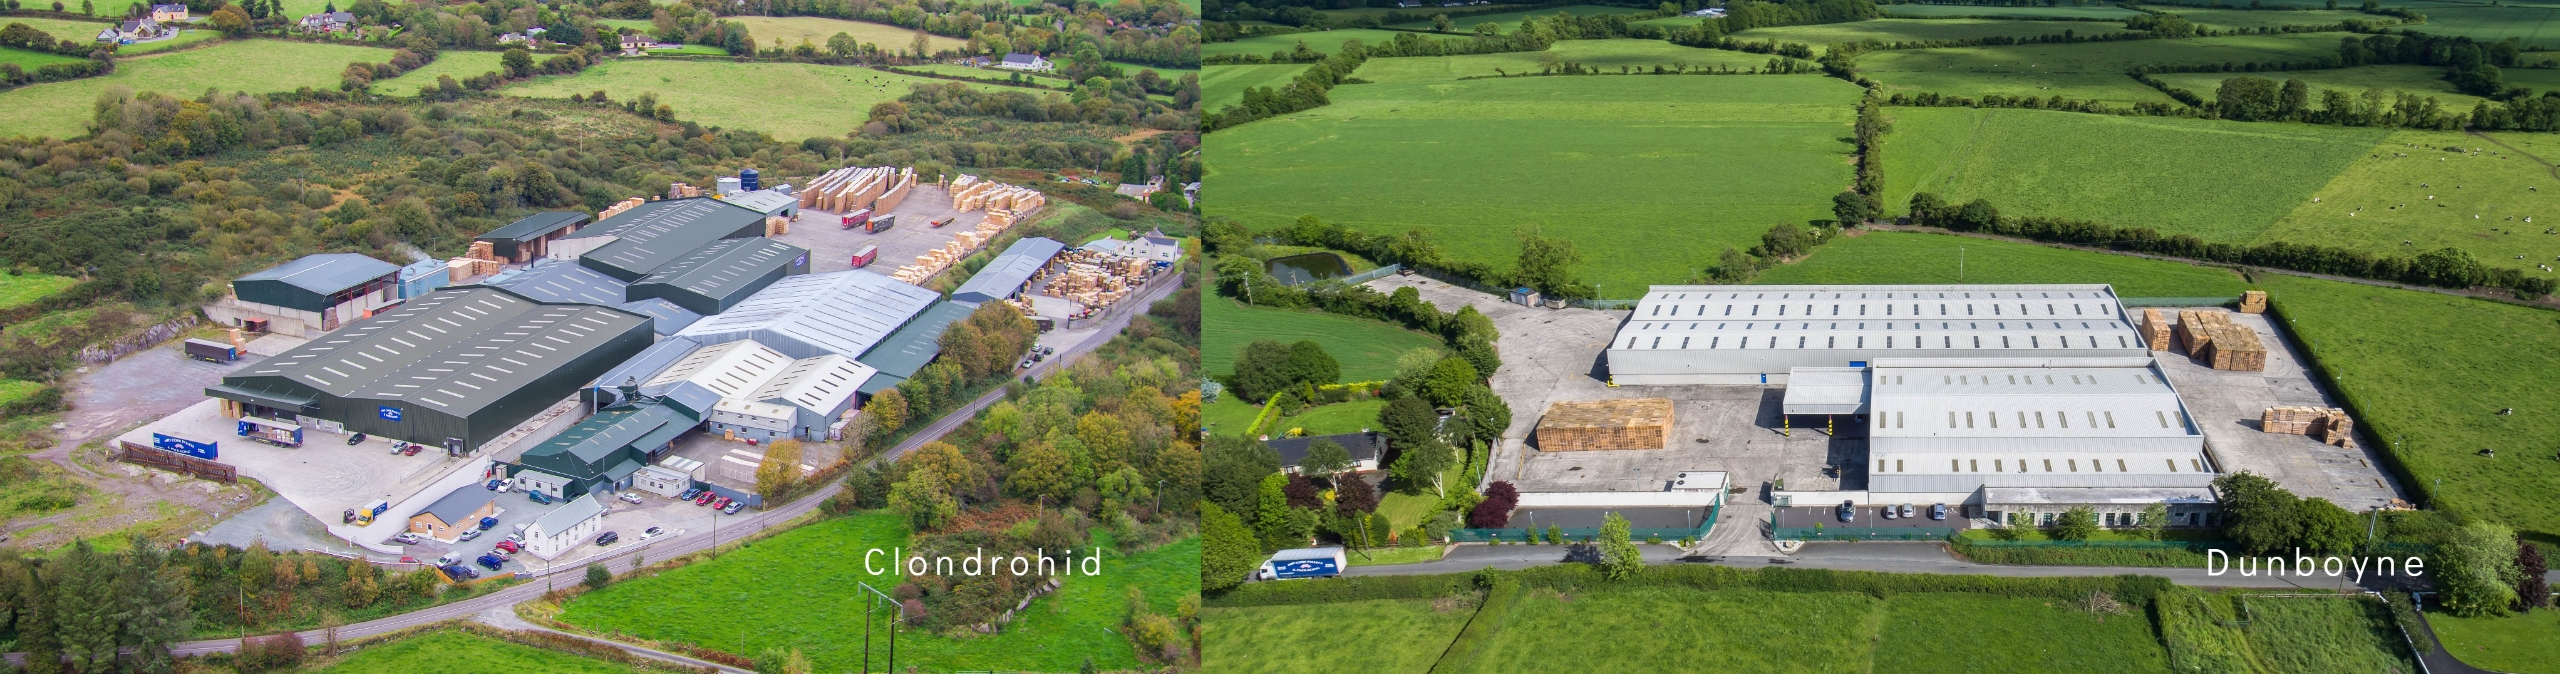 Mid Cork Pallets & Packaging (@midcorkpallets) Cover Image